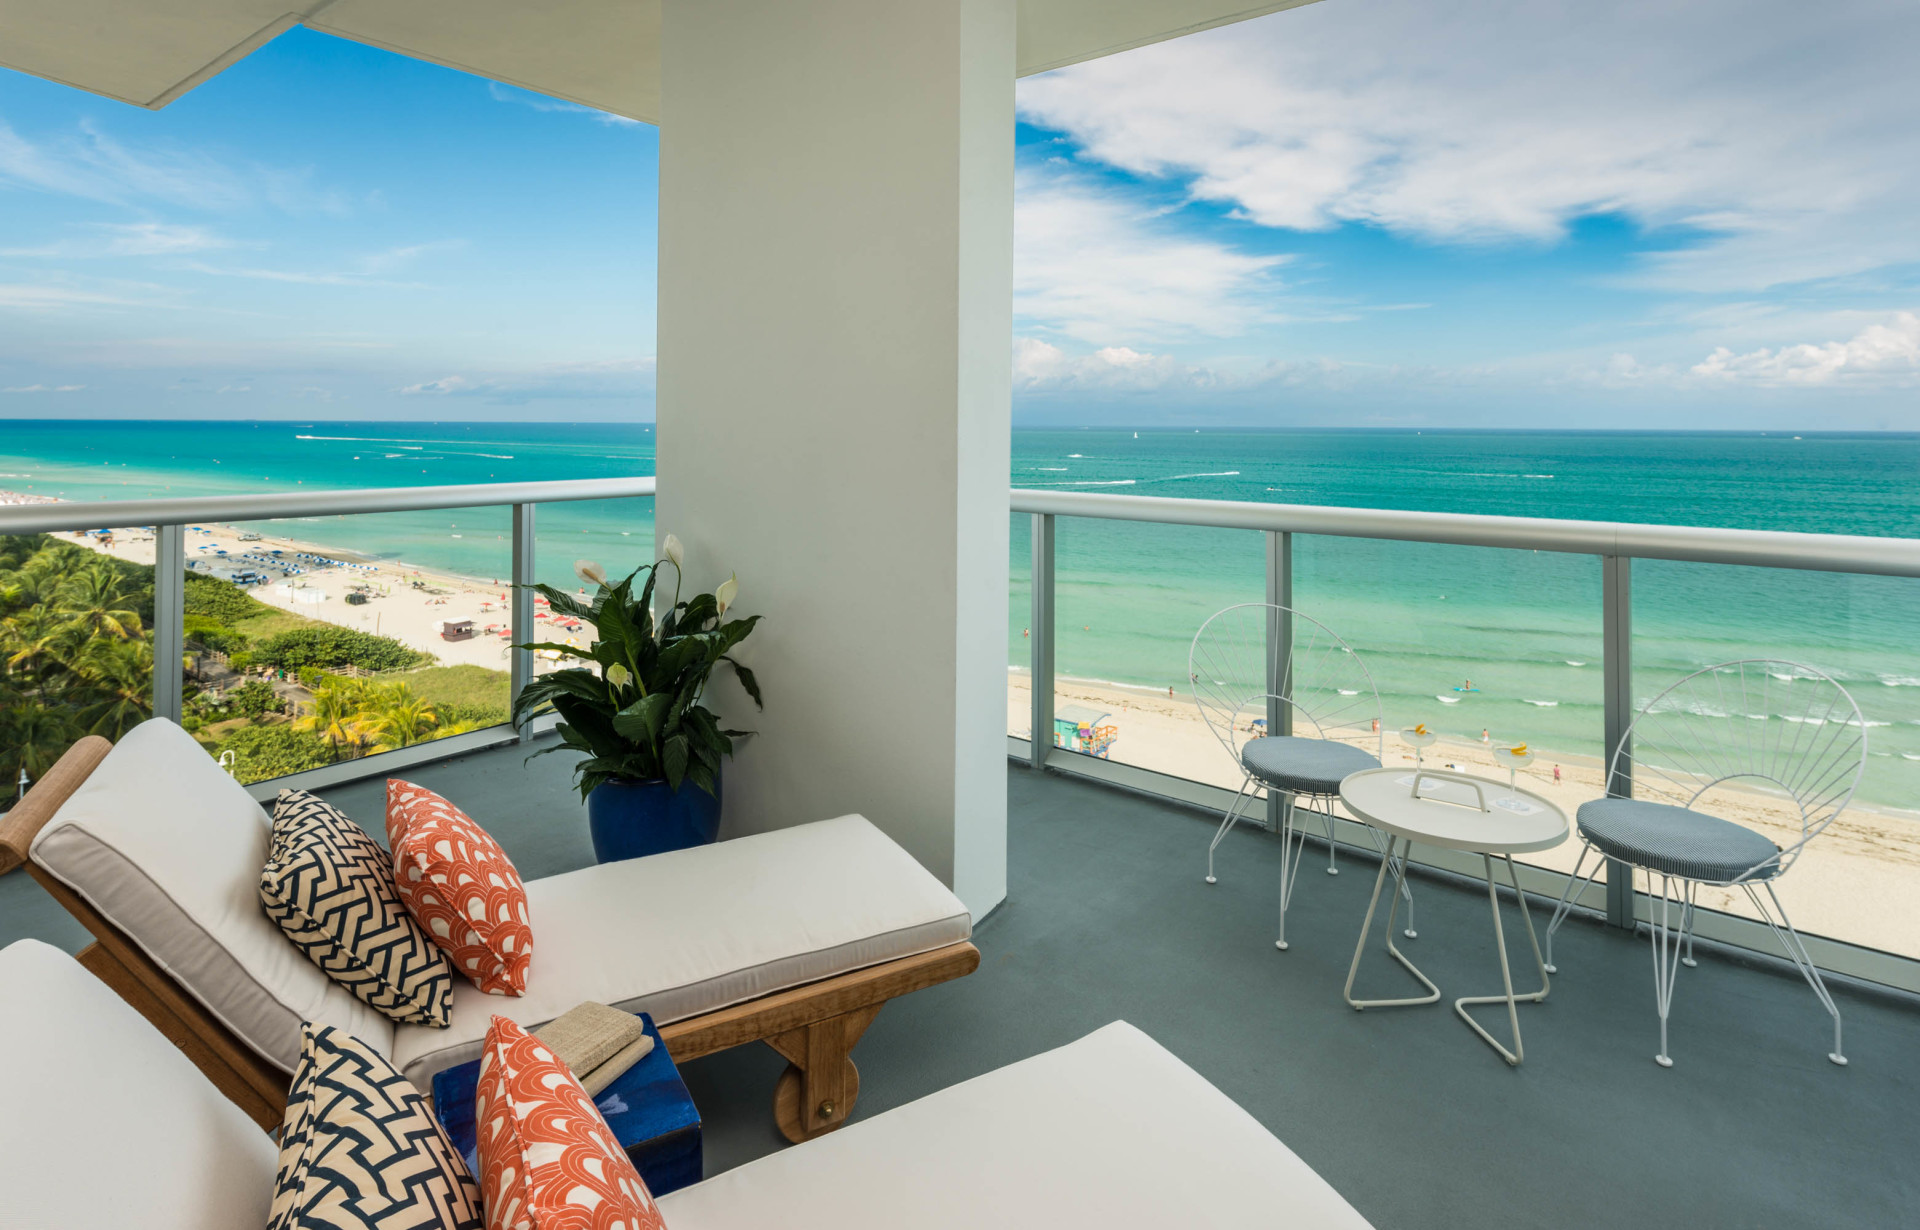 The Grooviest New Hotel in South Beach: Thompson Miami Beach